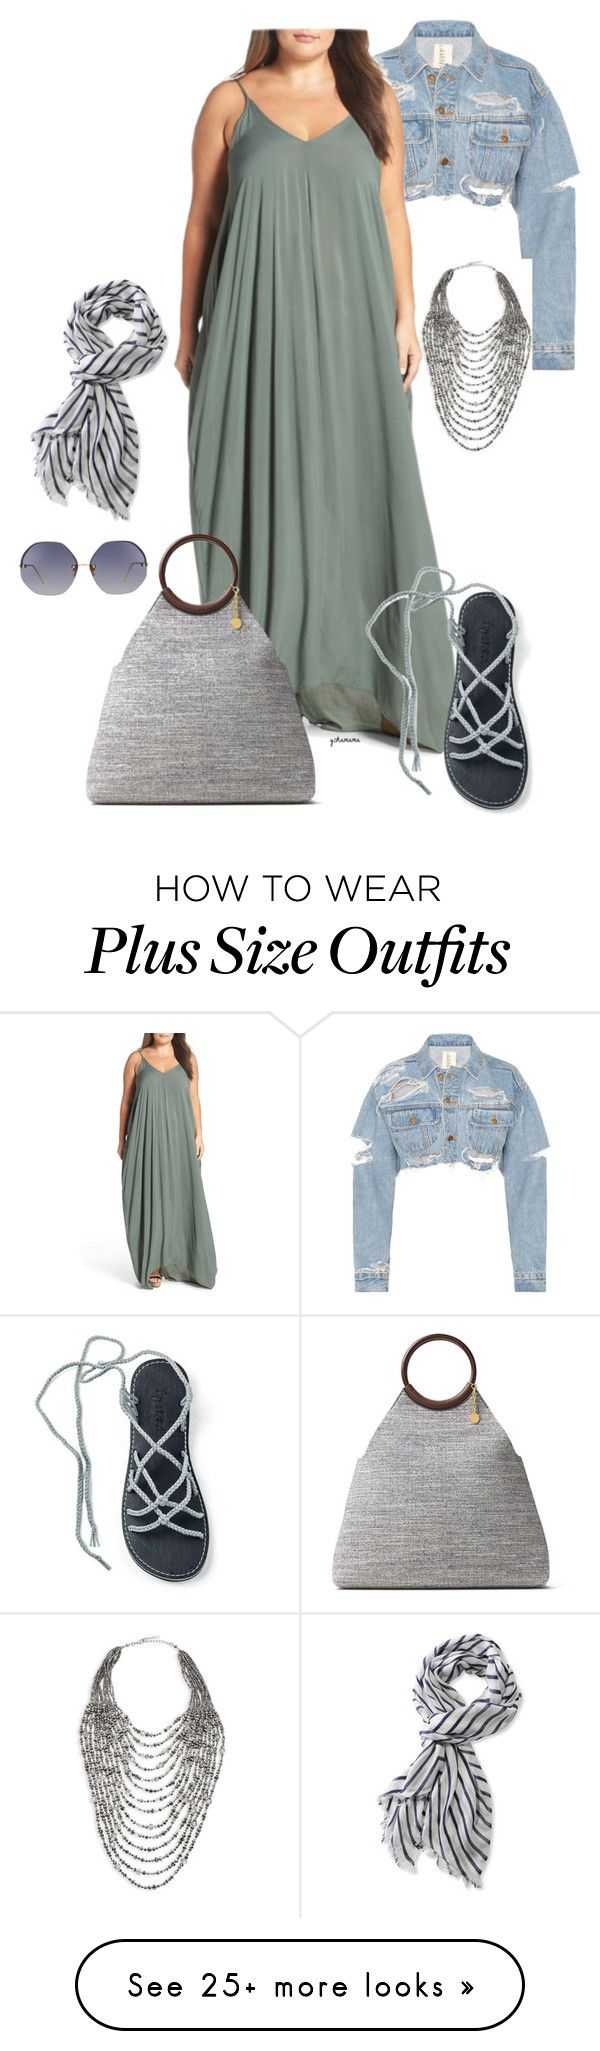 """""""You know what I'm like- plus size"""" by gchamama on Polyvore featuring Marina Rinaldi, ELAN, Michael Kors, Linda Farrow, L.L.Bean and plus size dresses"""